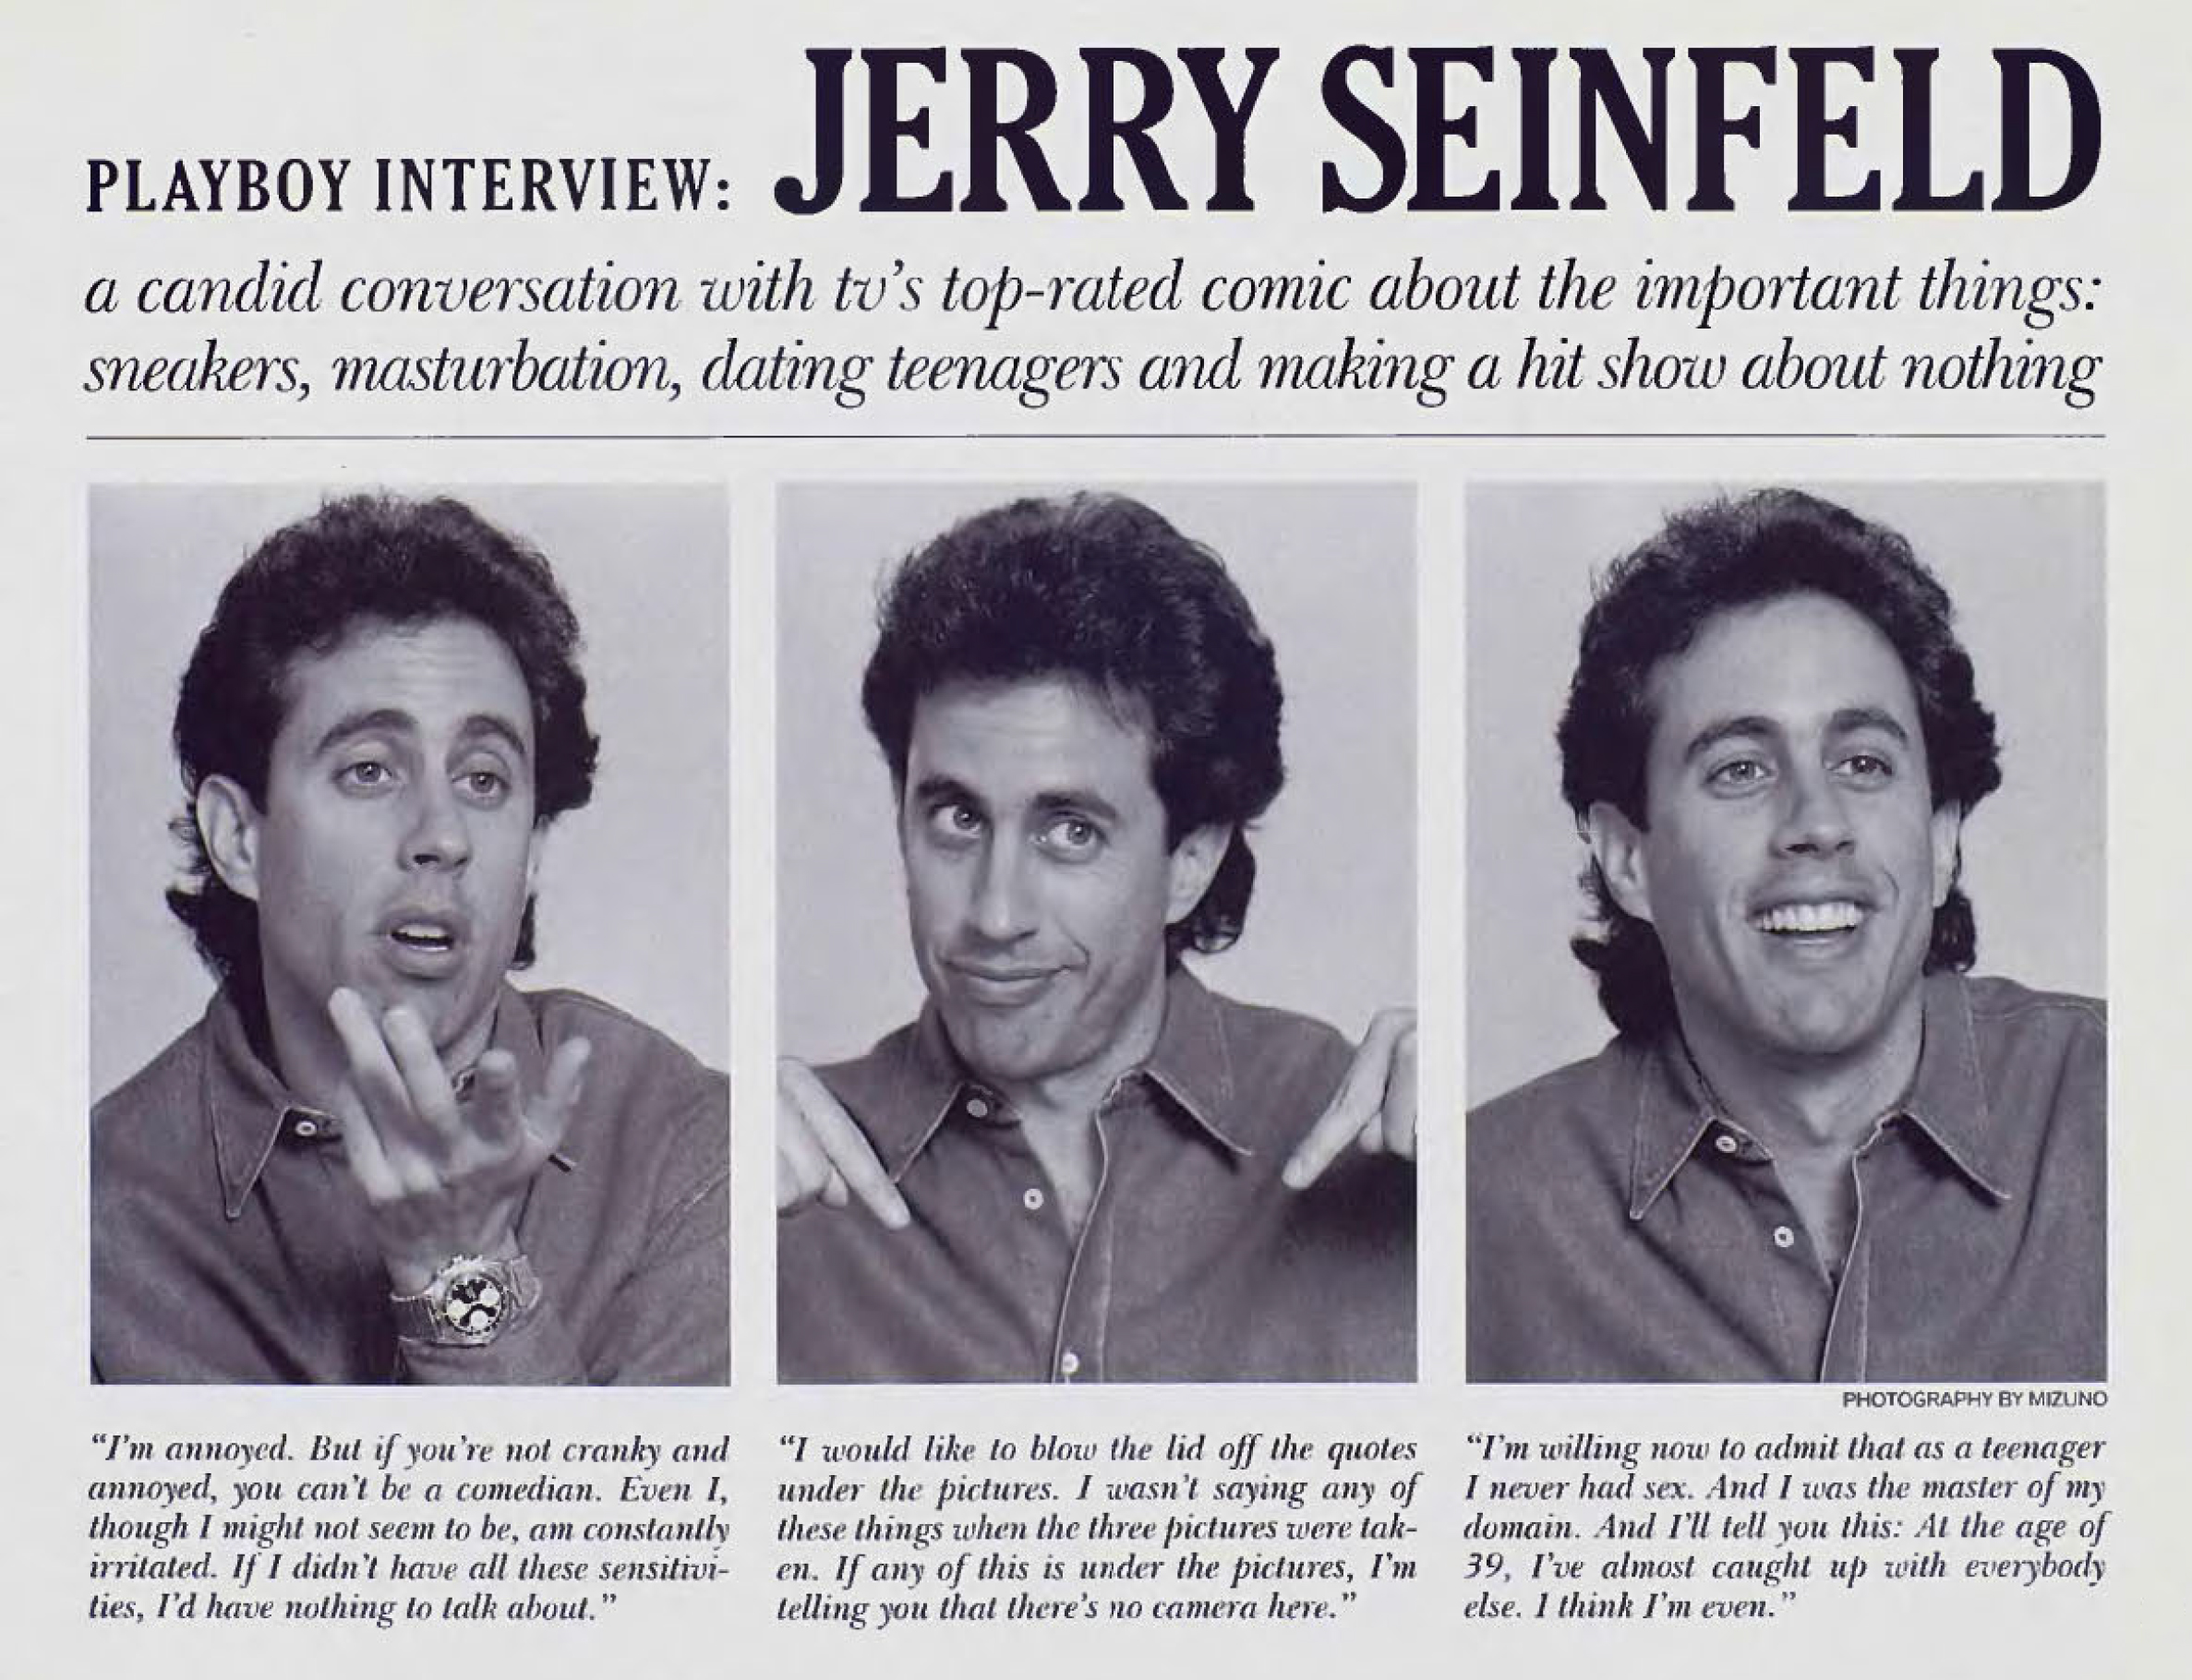 Jerry Seinfeld - Playboy Interview 1993